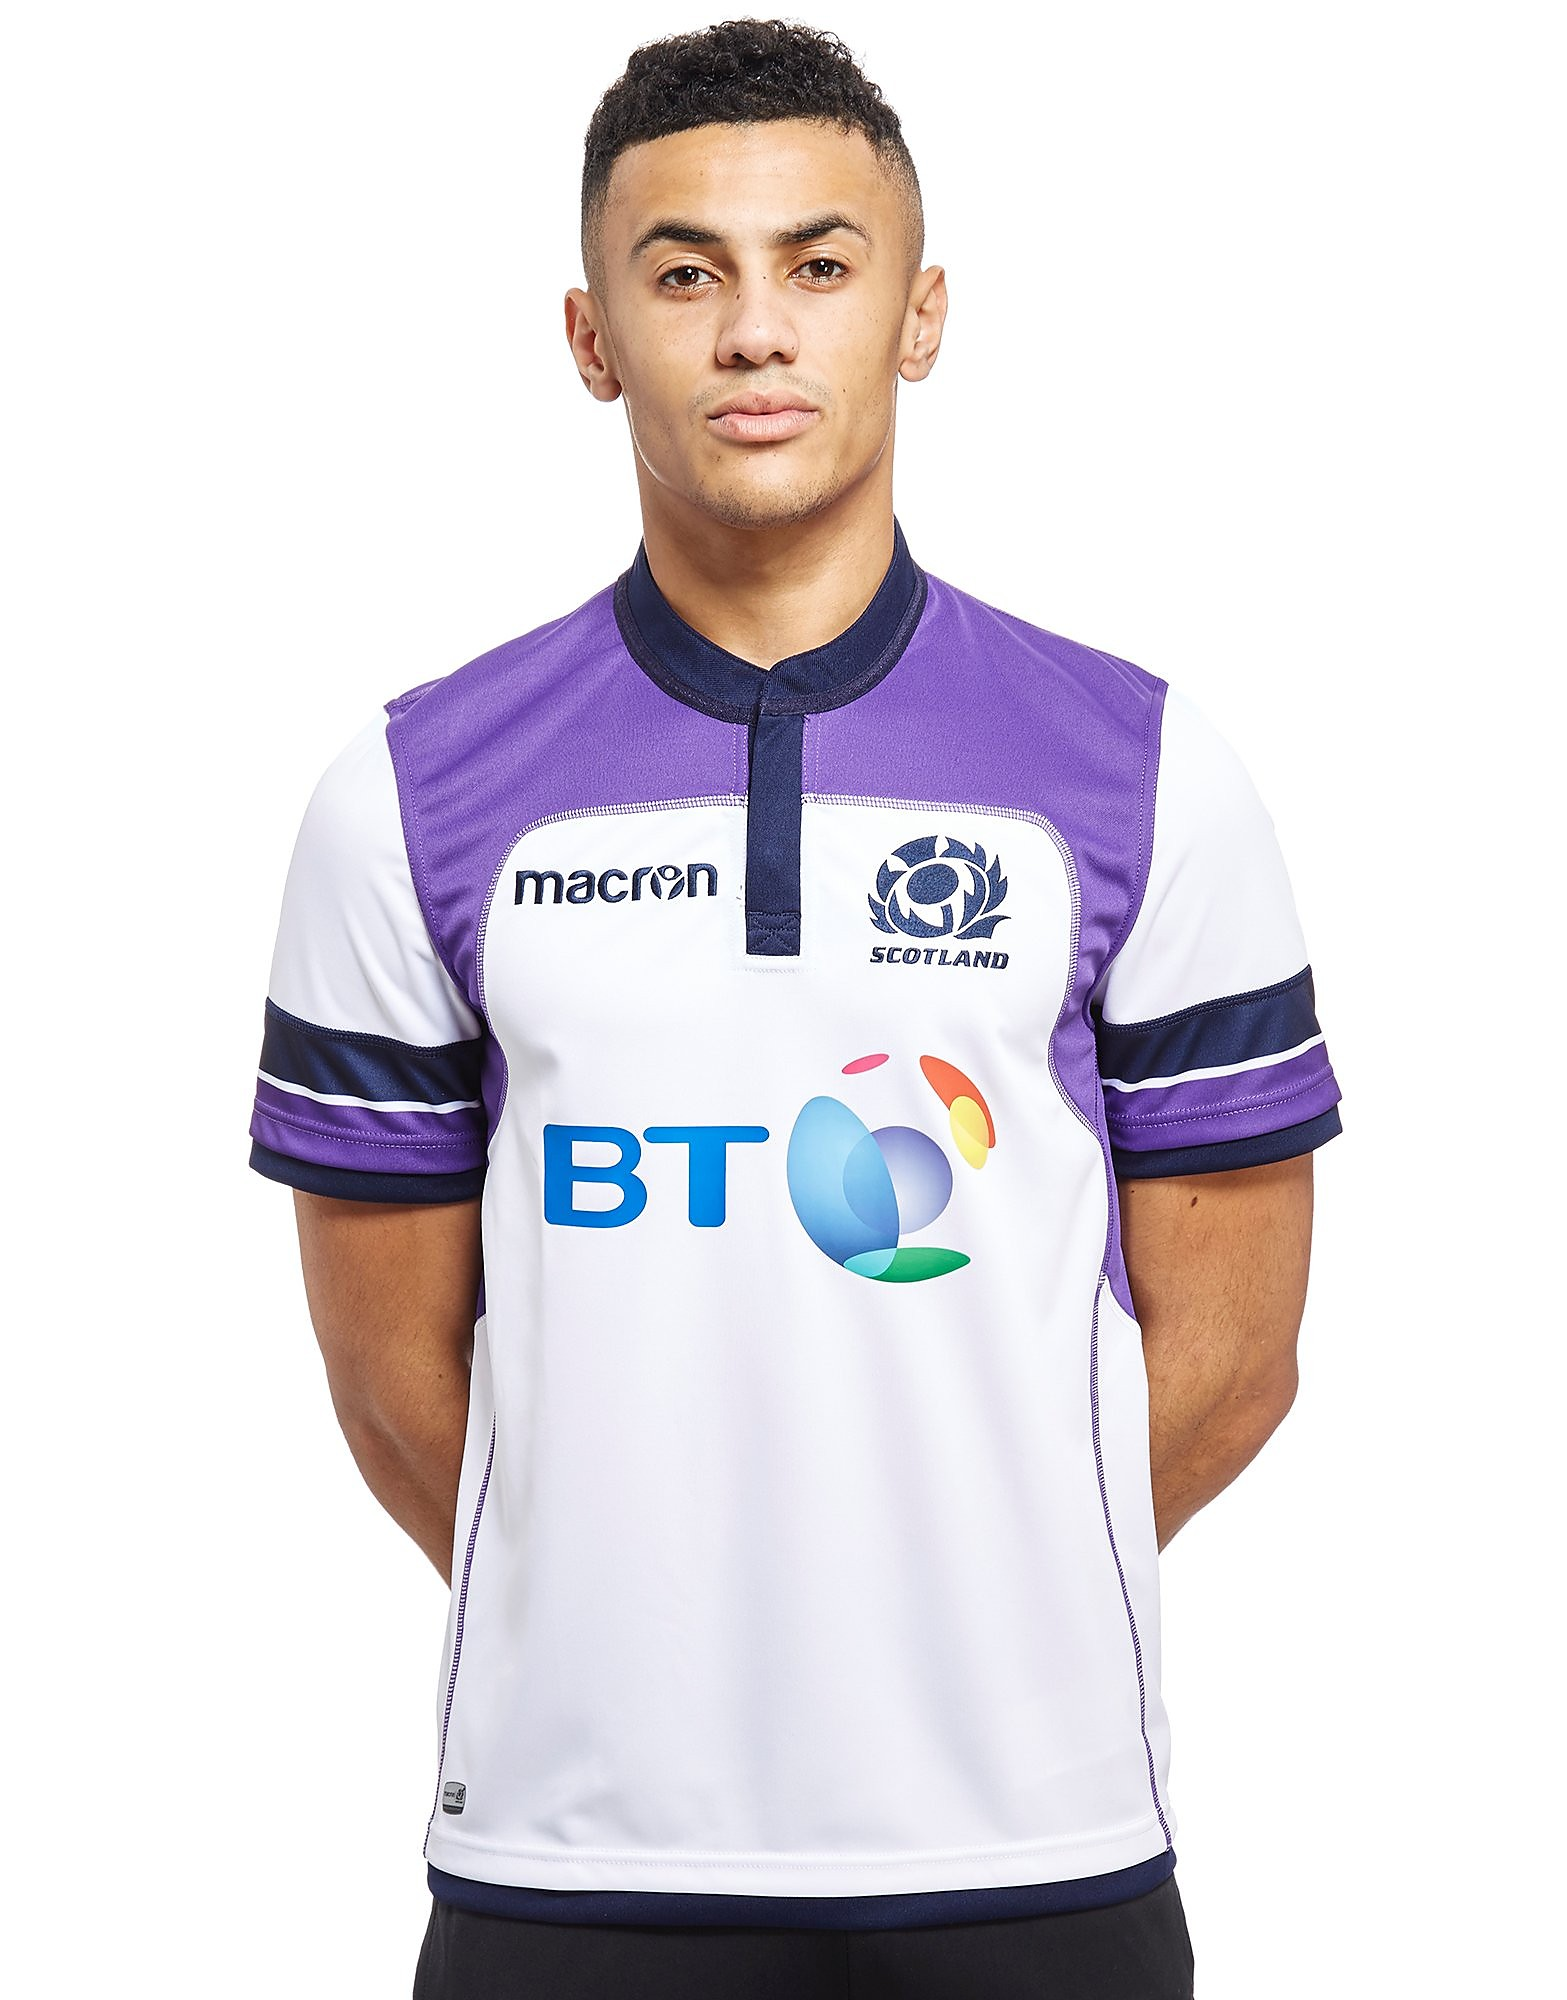 Macron Official Scotland Alternative Replica Maglia Squadra